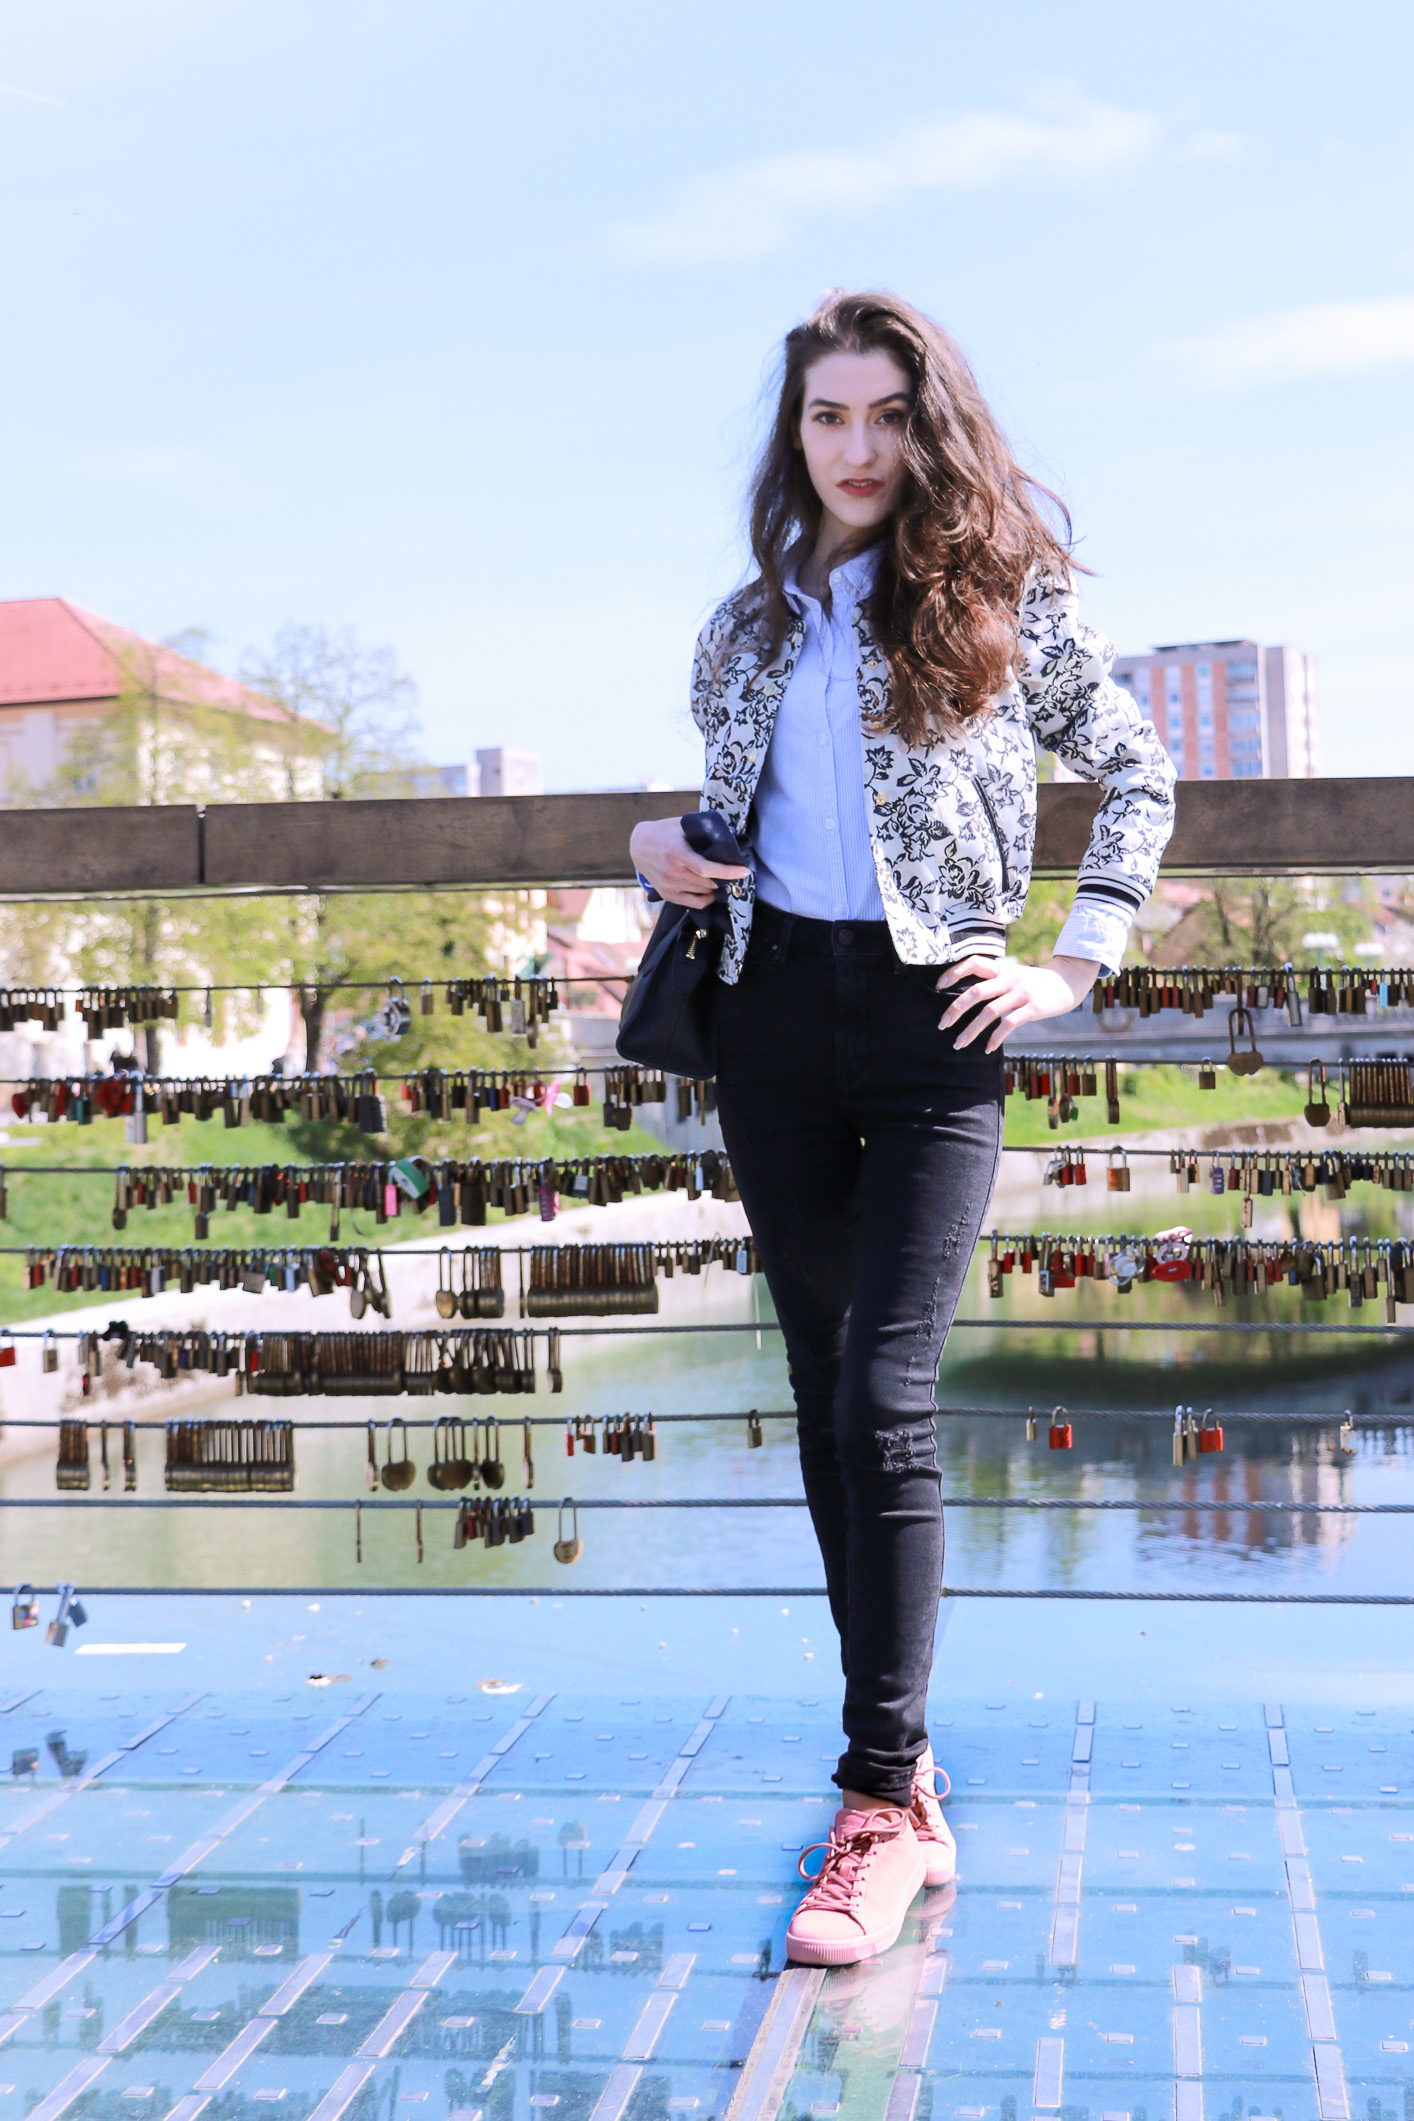 Fashion blogger Veronika Lipar of Brunette From Wall Street sharing how to style dusty pink sneakers for the weekend